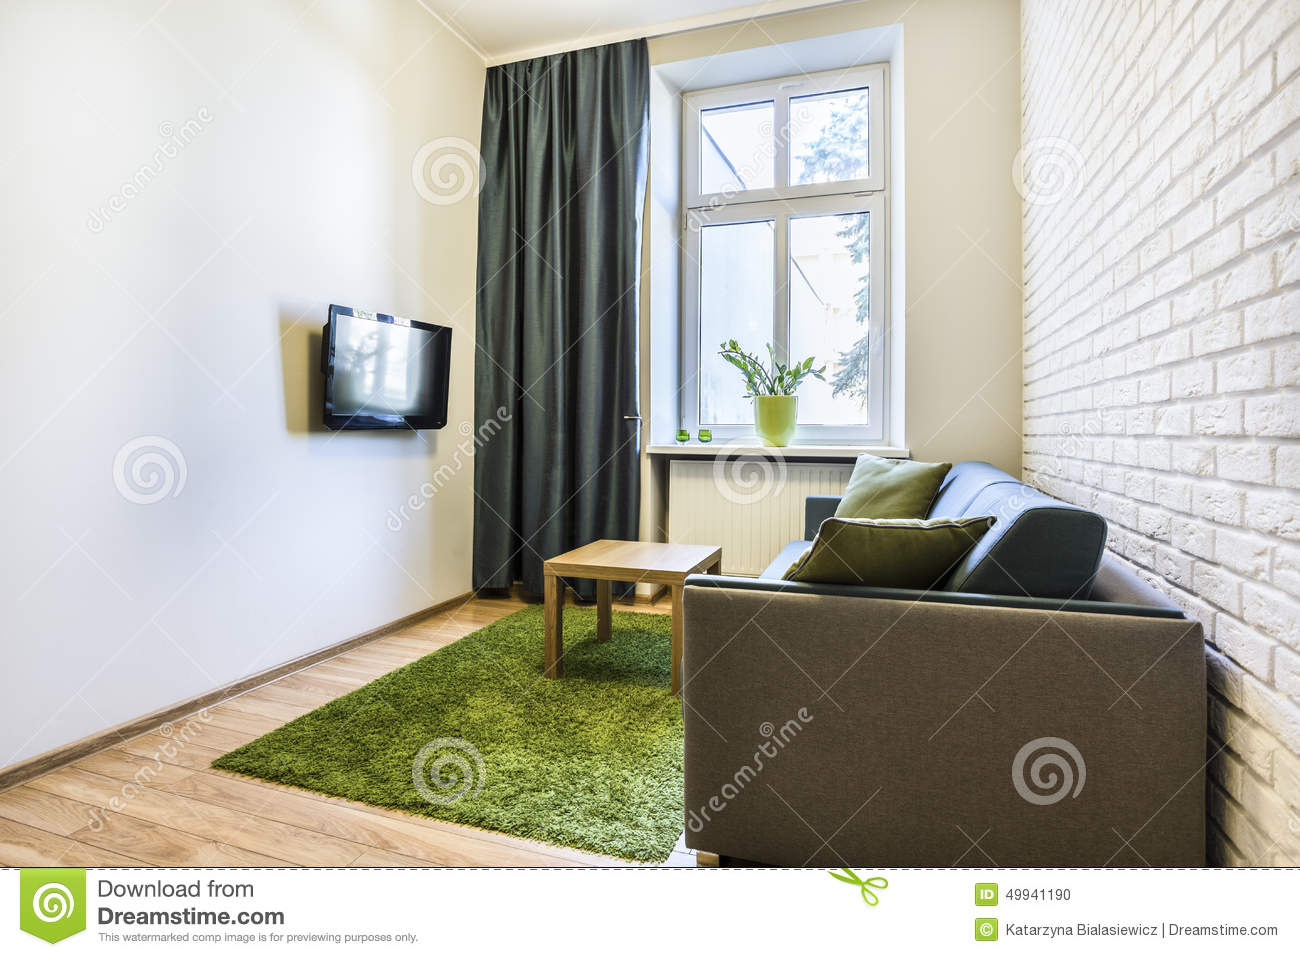 Small and cozy living room with green carpet